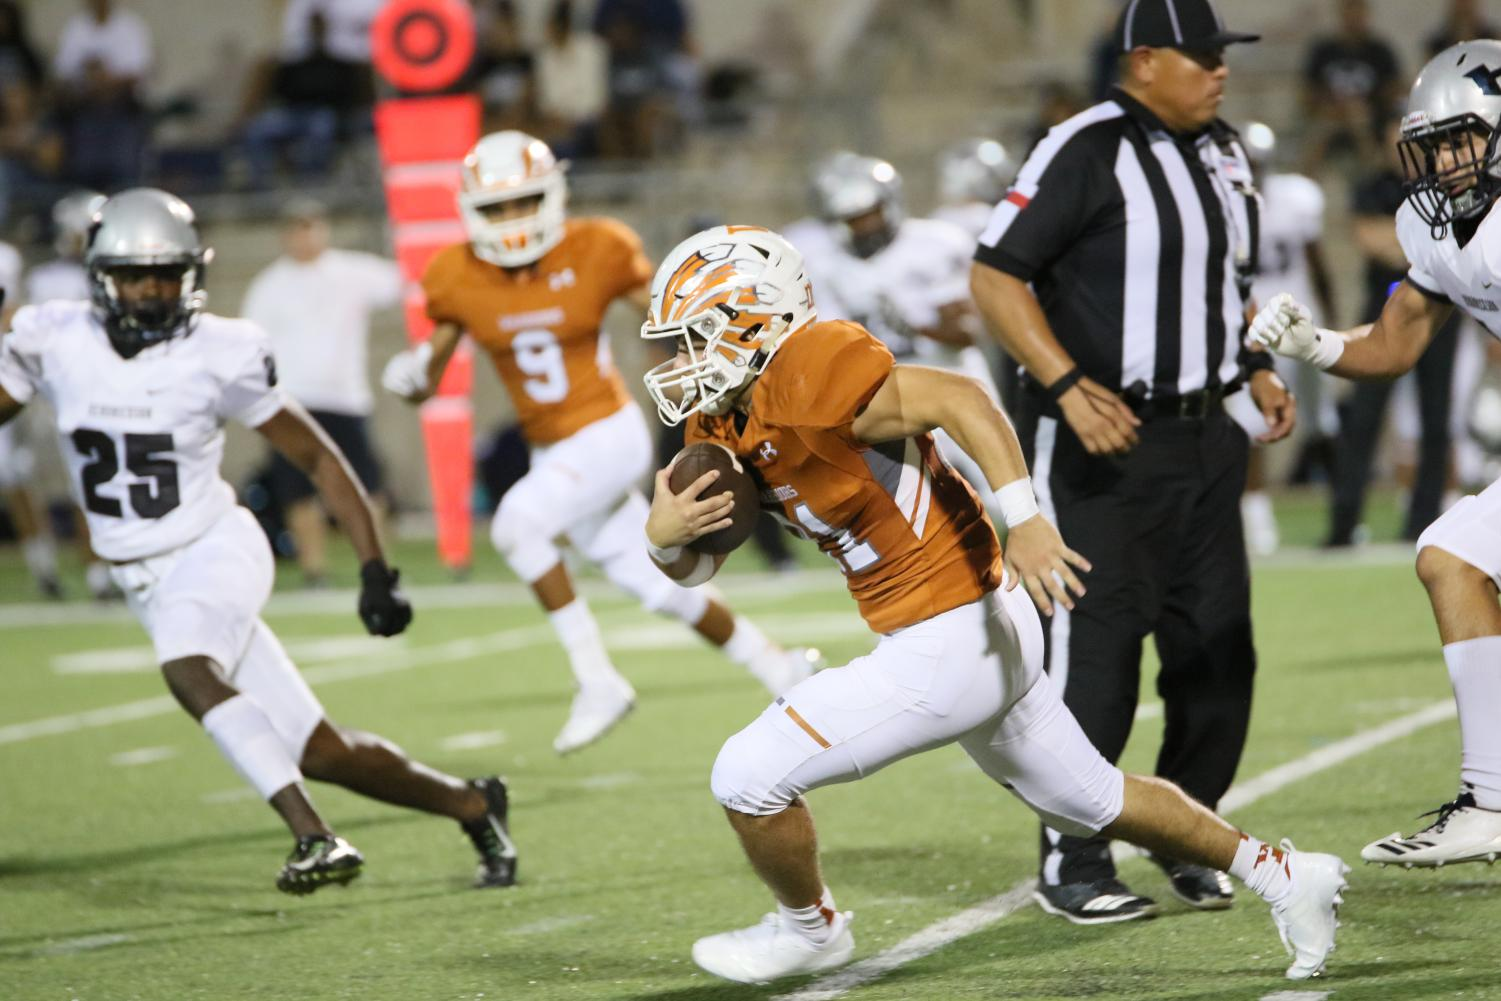 Varsity+Football+Blown+Out+64-14+To+Begin+District+Play